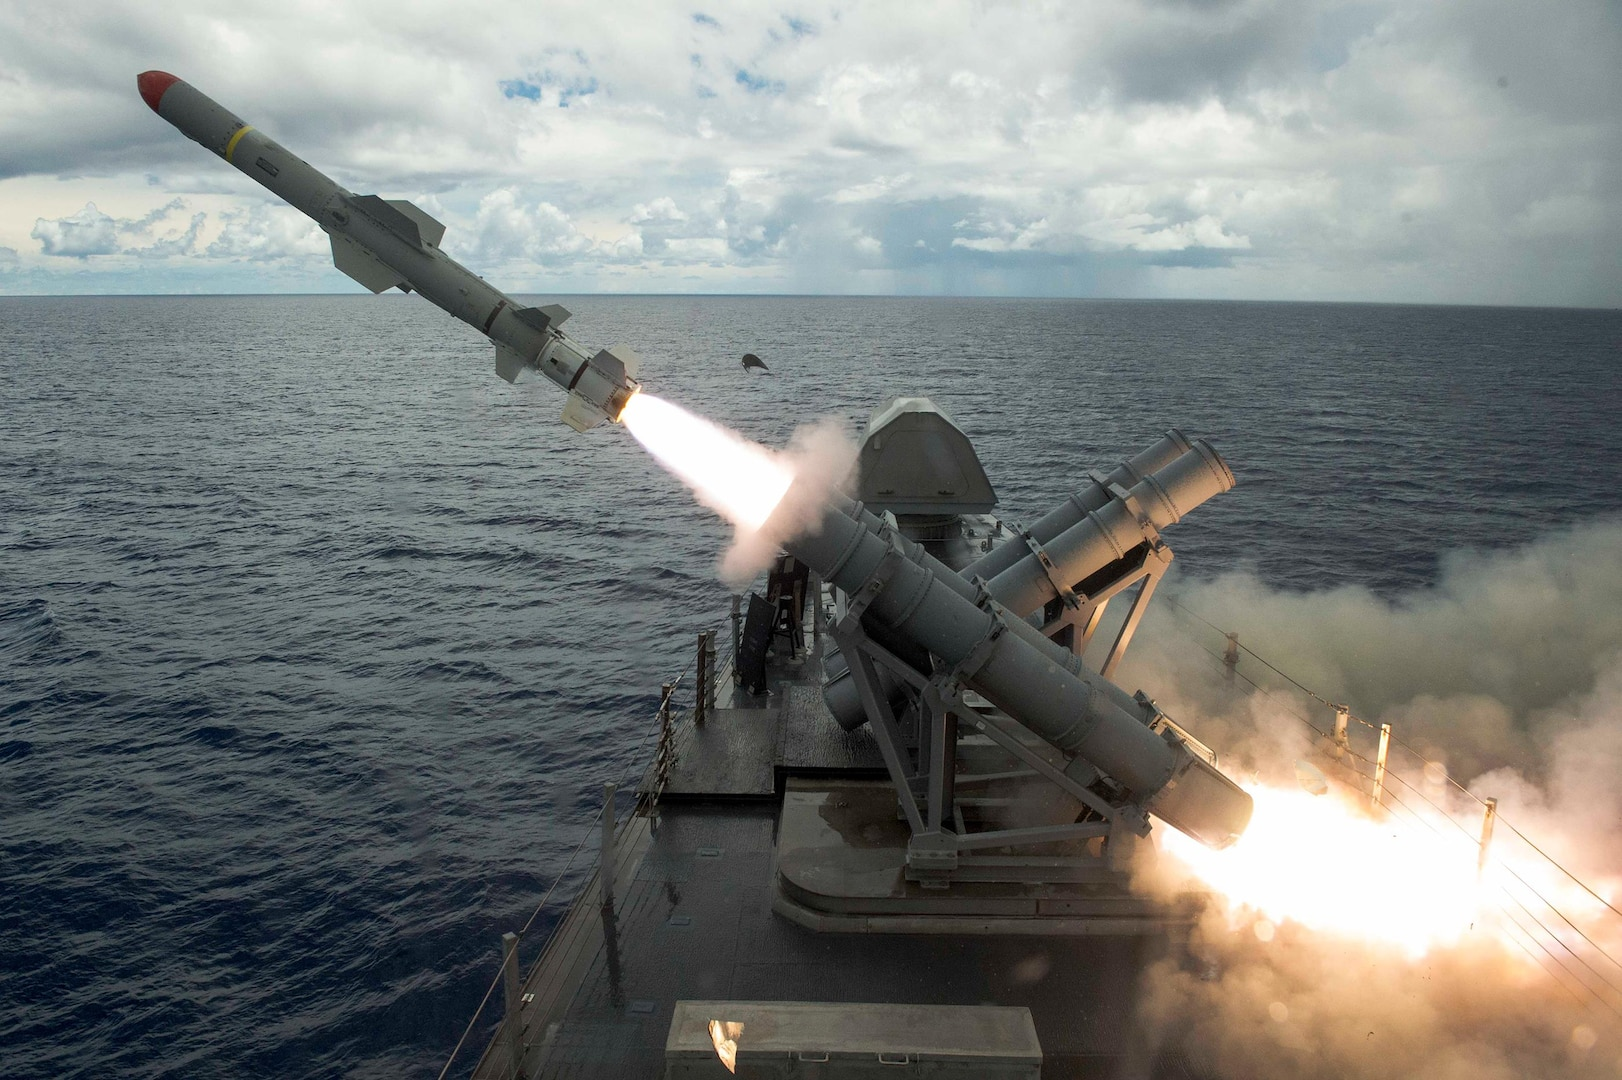 USS Coronado hits target with lethal, harpoon missile during training